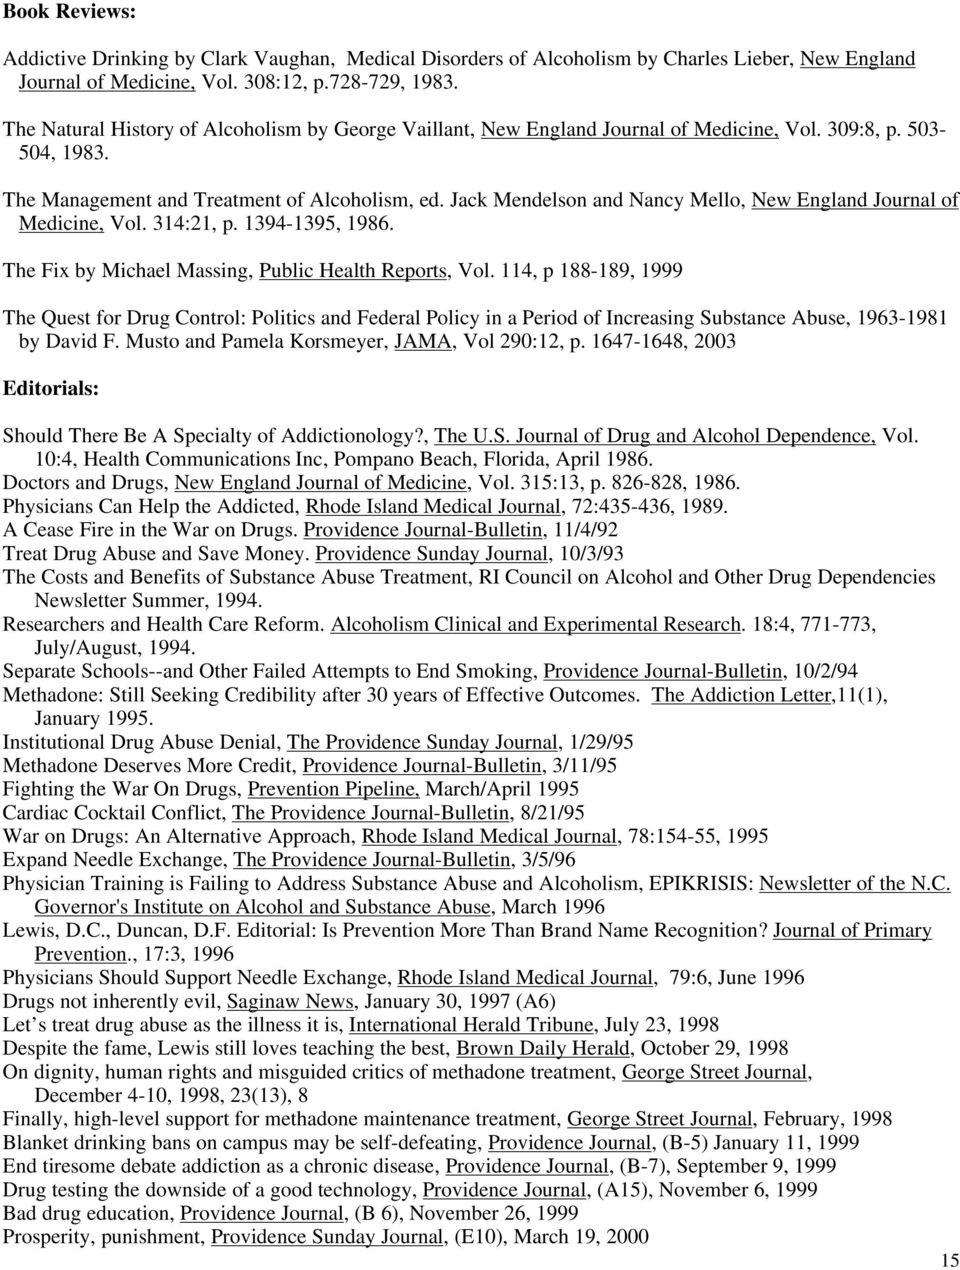 Jack Mendelson and Nancy Mello, New England Journal of Medicine, Vol. 314:21, p. 1394-1395, 1986. The Fix by Michael Massing, Public Health Reports, Vol.